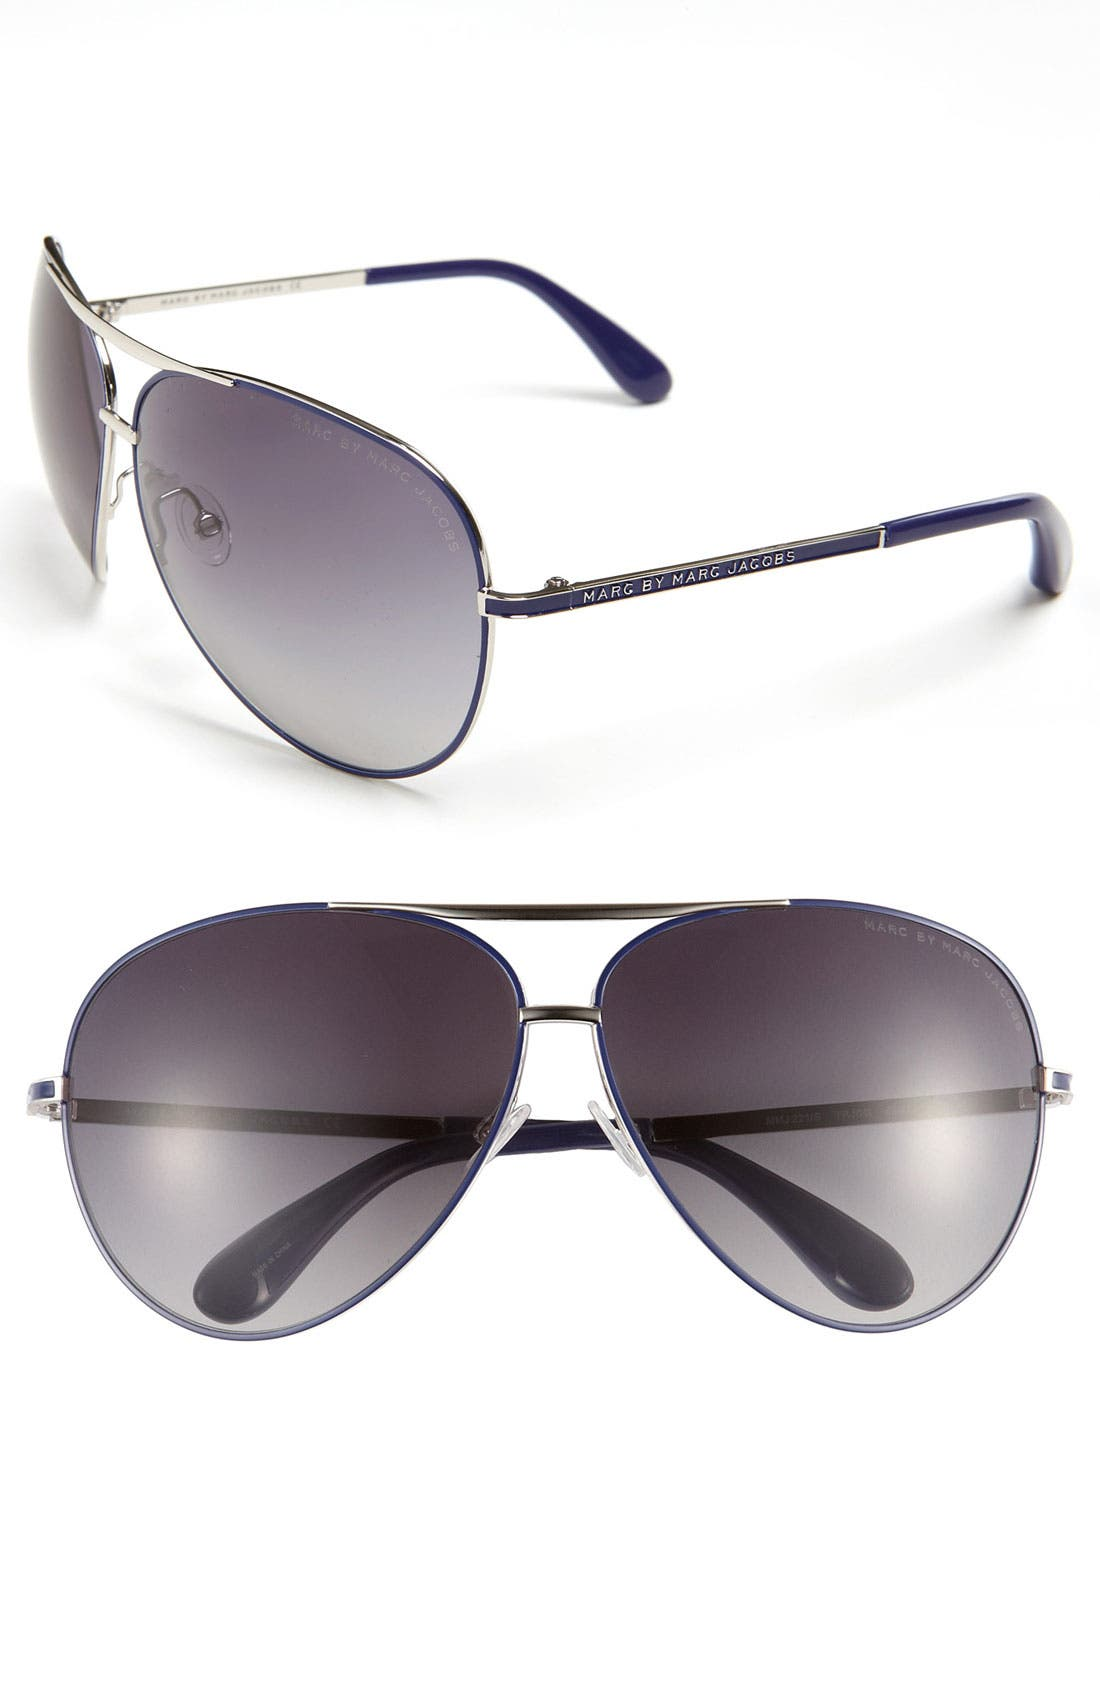 Main Image - MARC BY MARC JACOBS 63mm Aviator Sunglasses